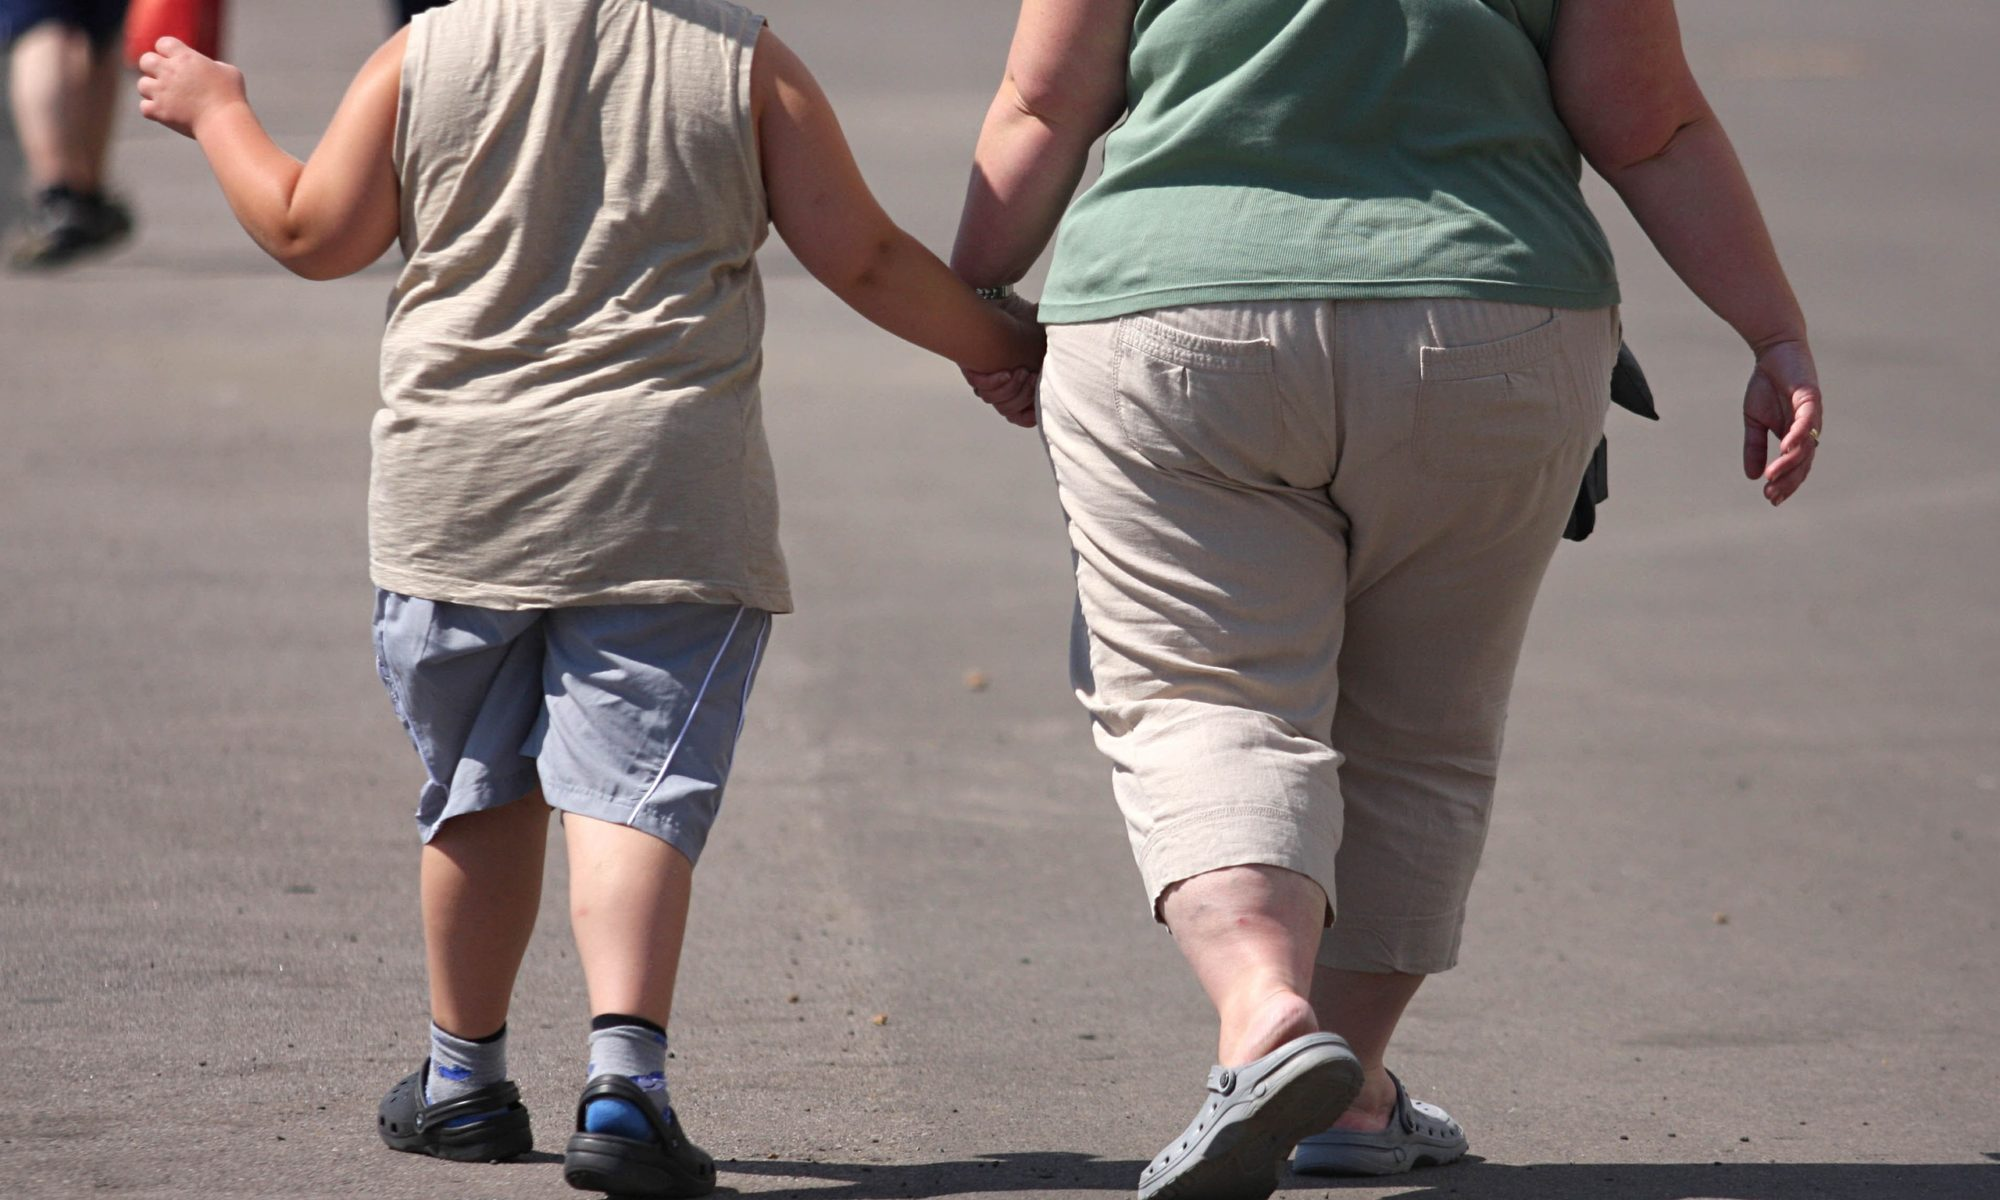 An overweight child and mother.